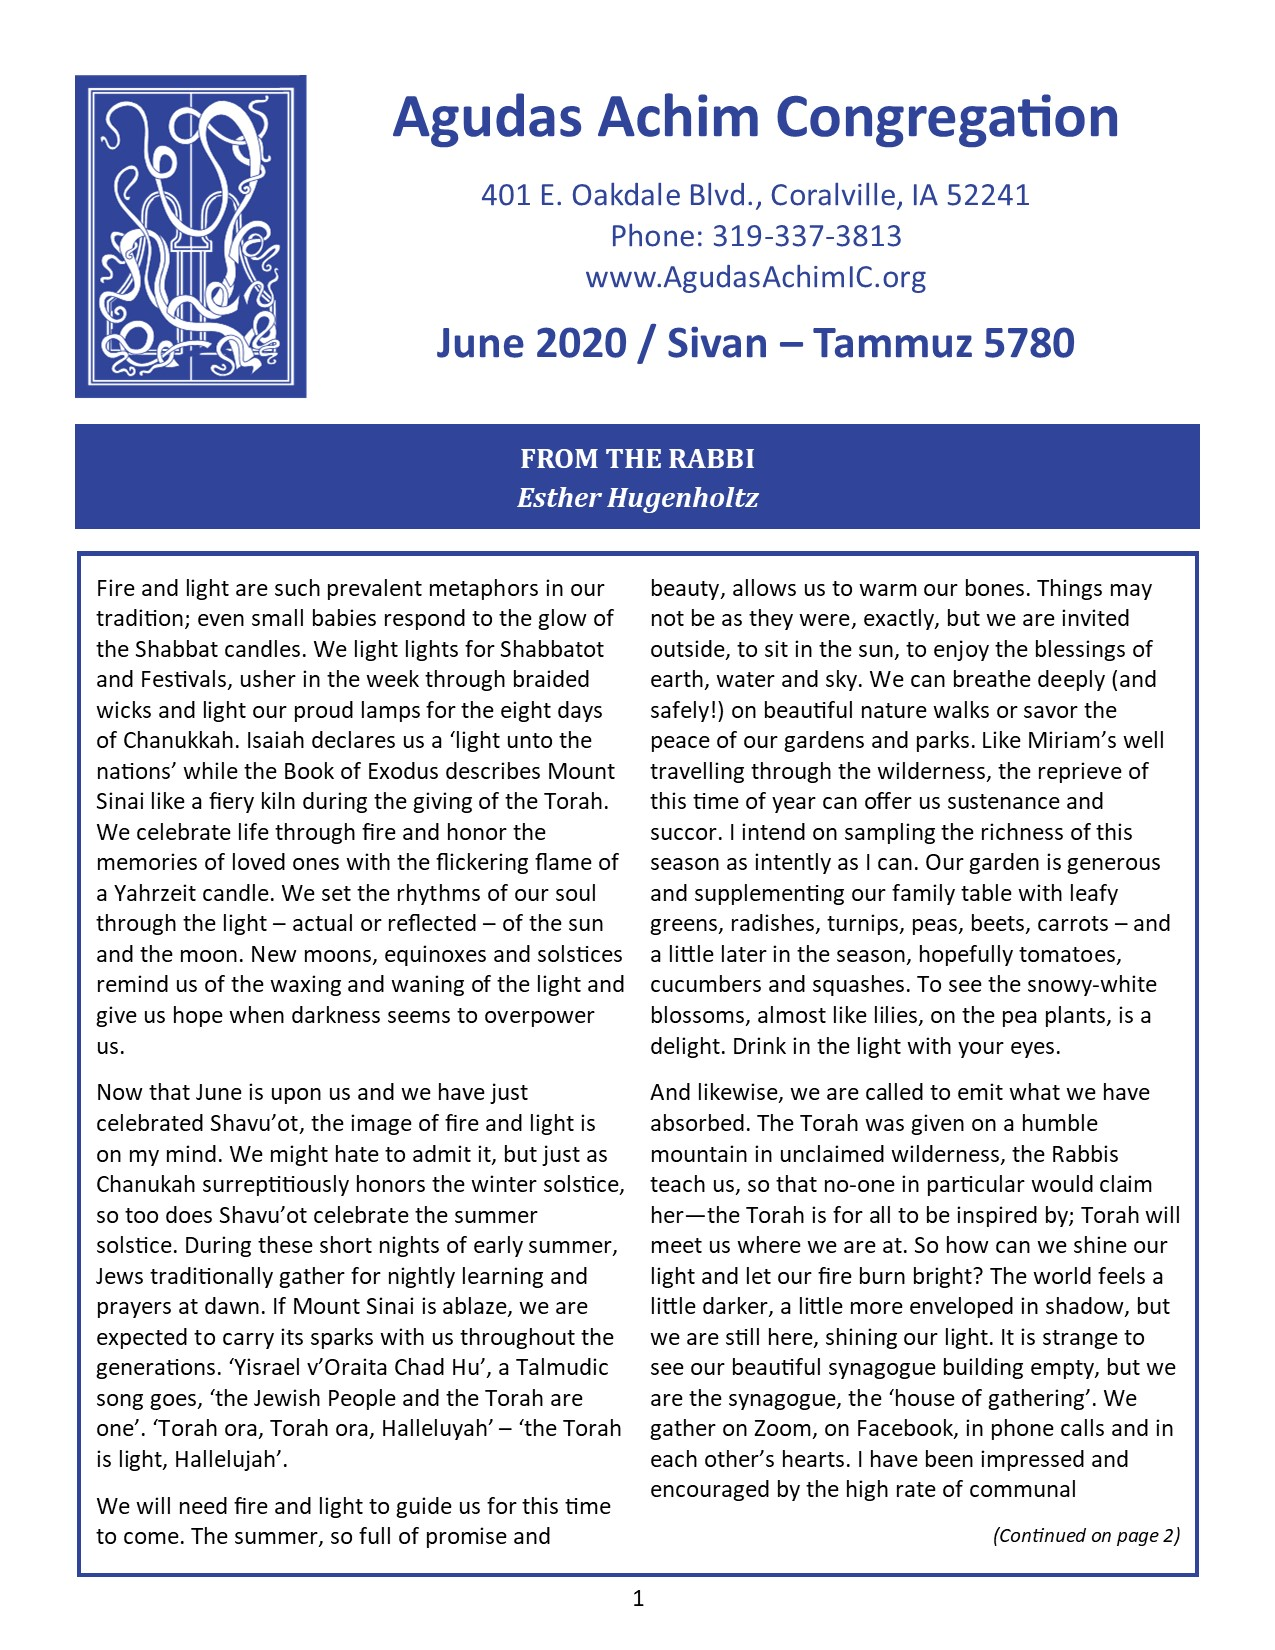 June 2020 Bulletin Cover